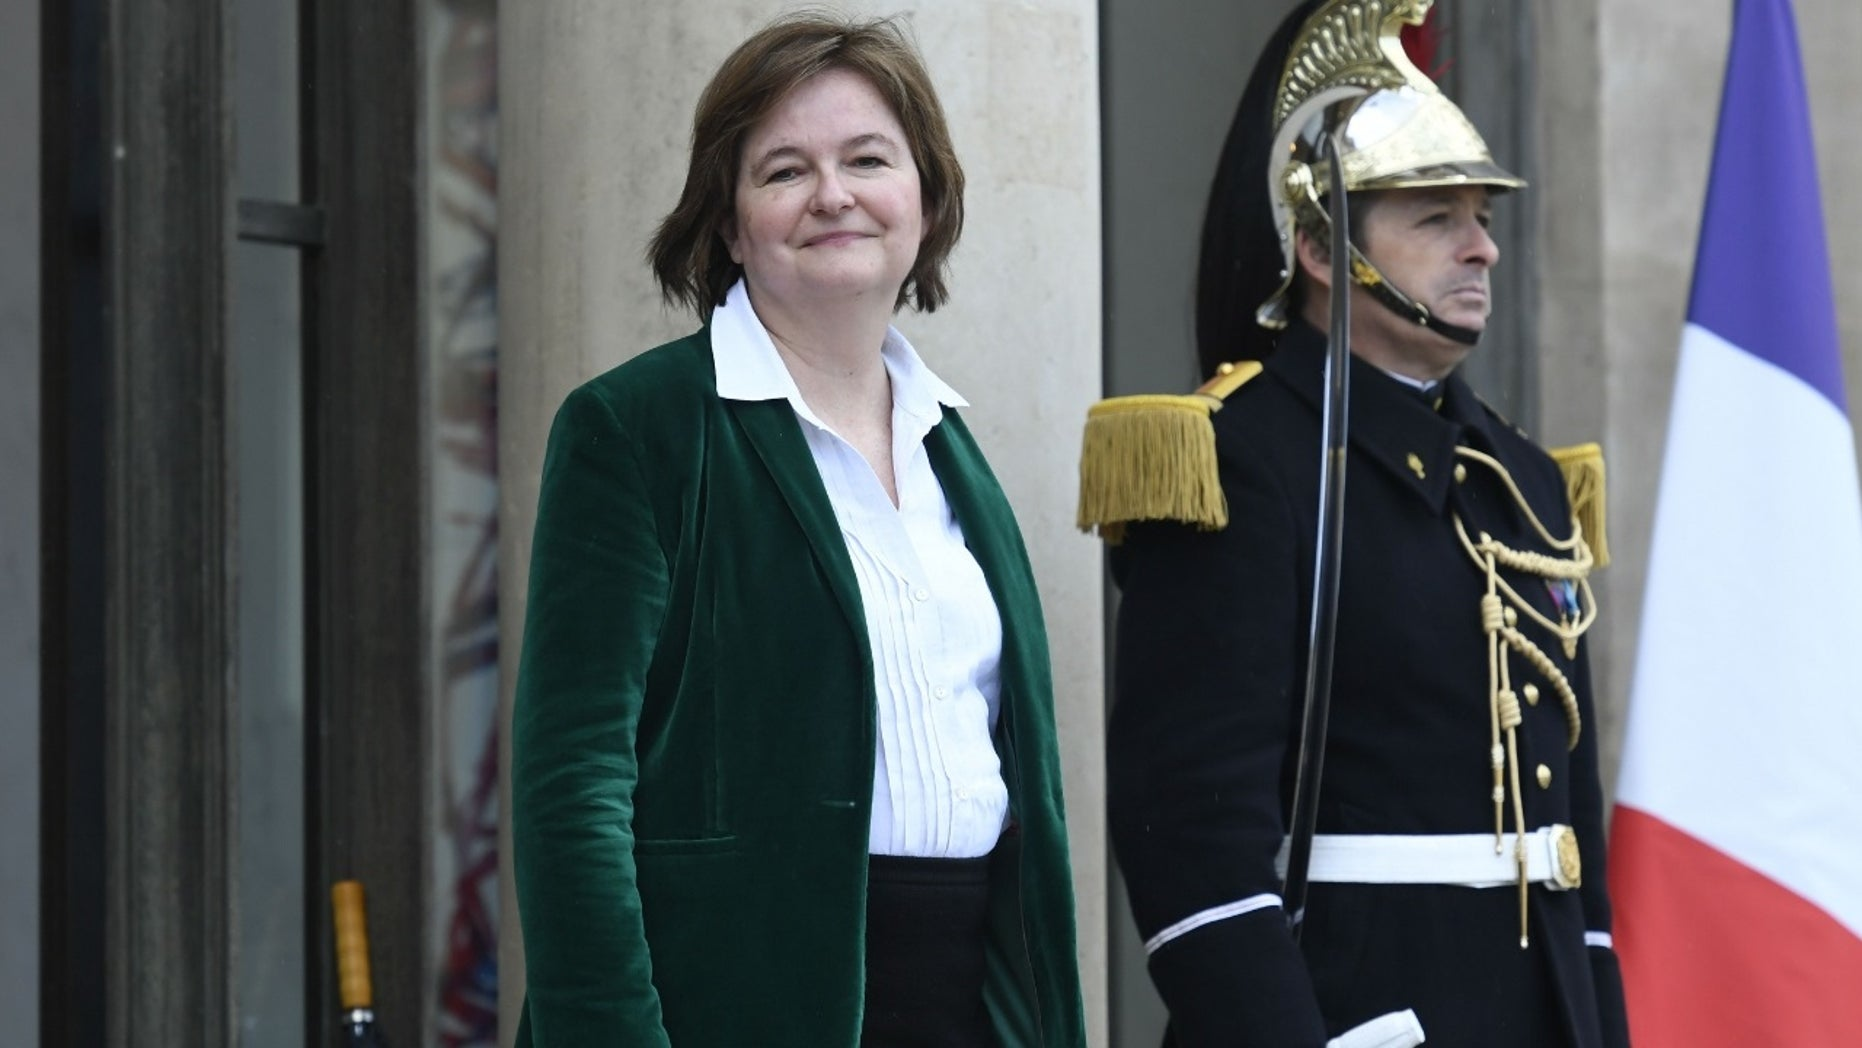 Nathalie Loiseau, France's minister for European Affairs, revealed that she named her cat Brexit because the animal is often indecisive, a report said.